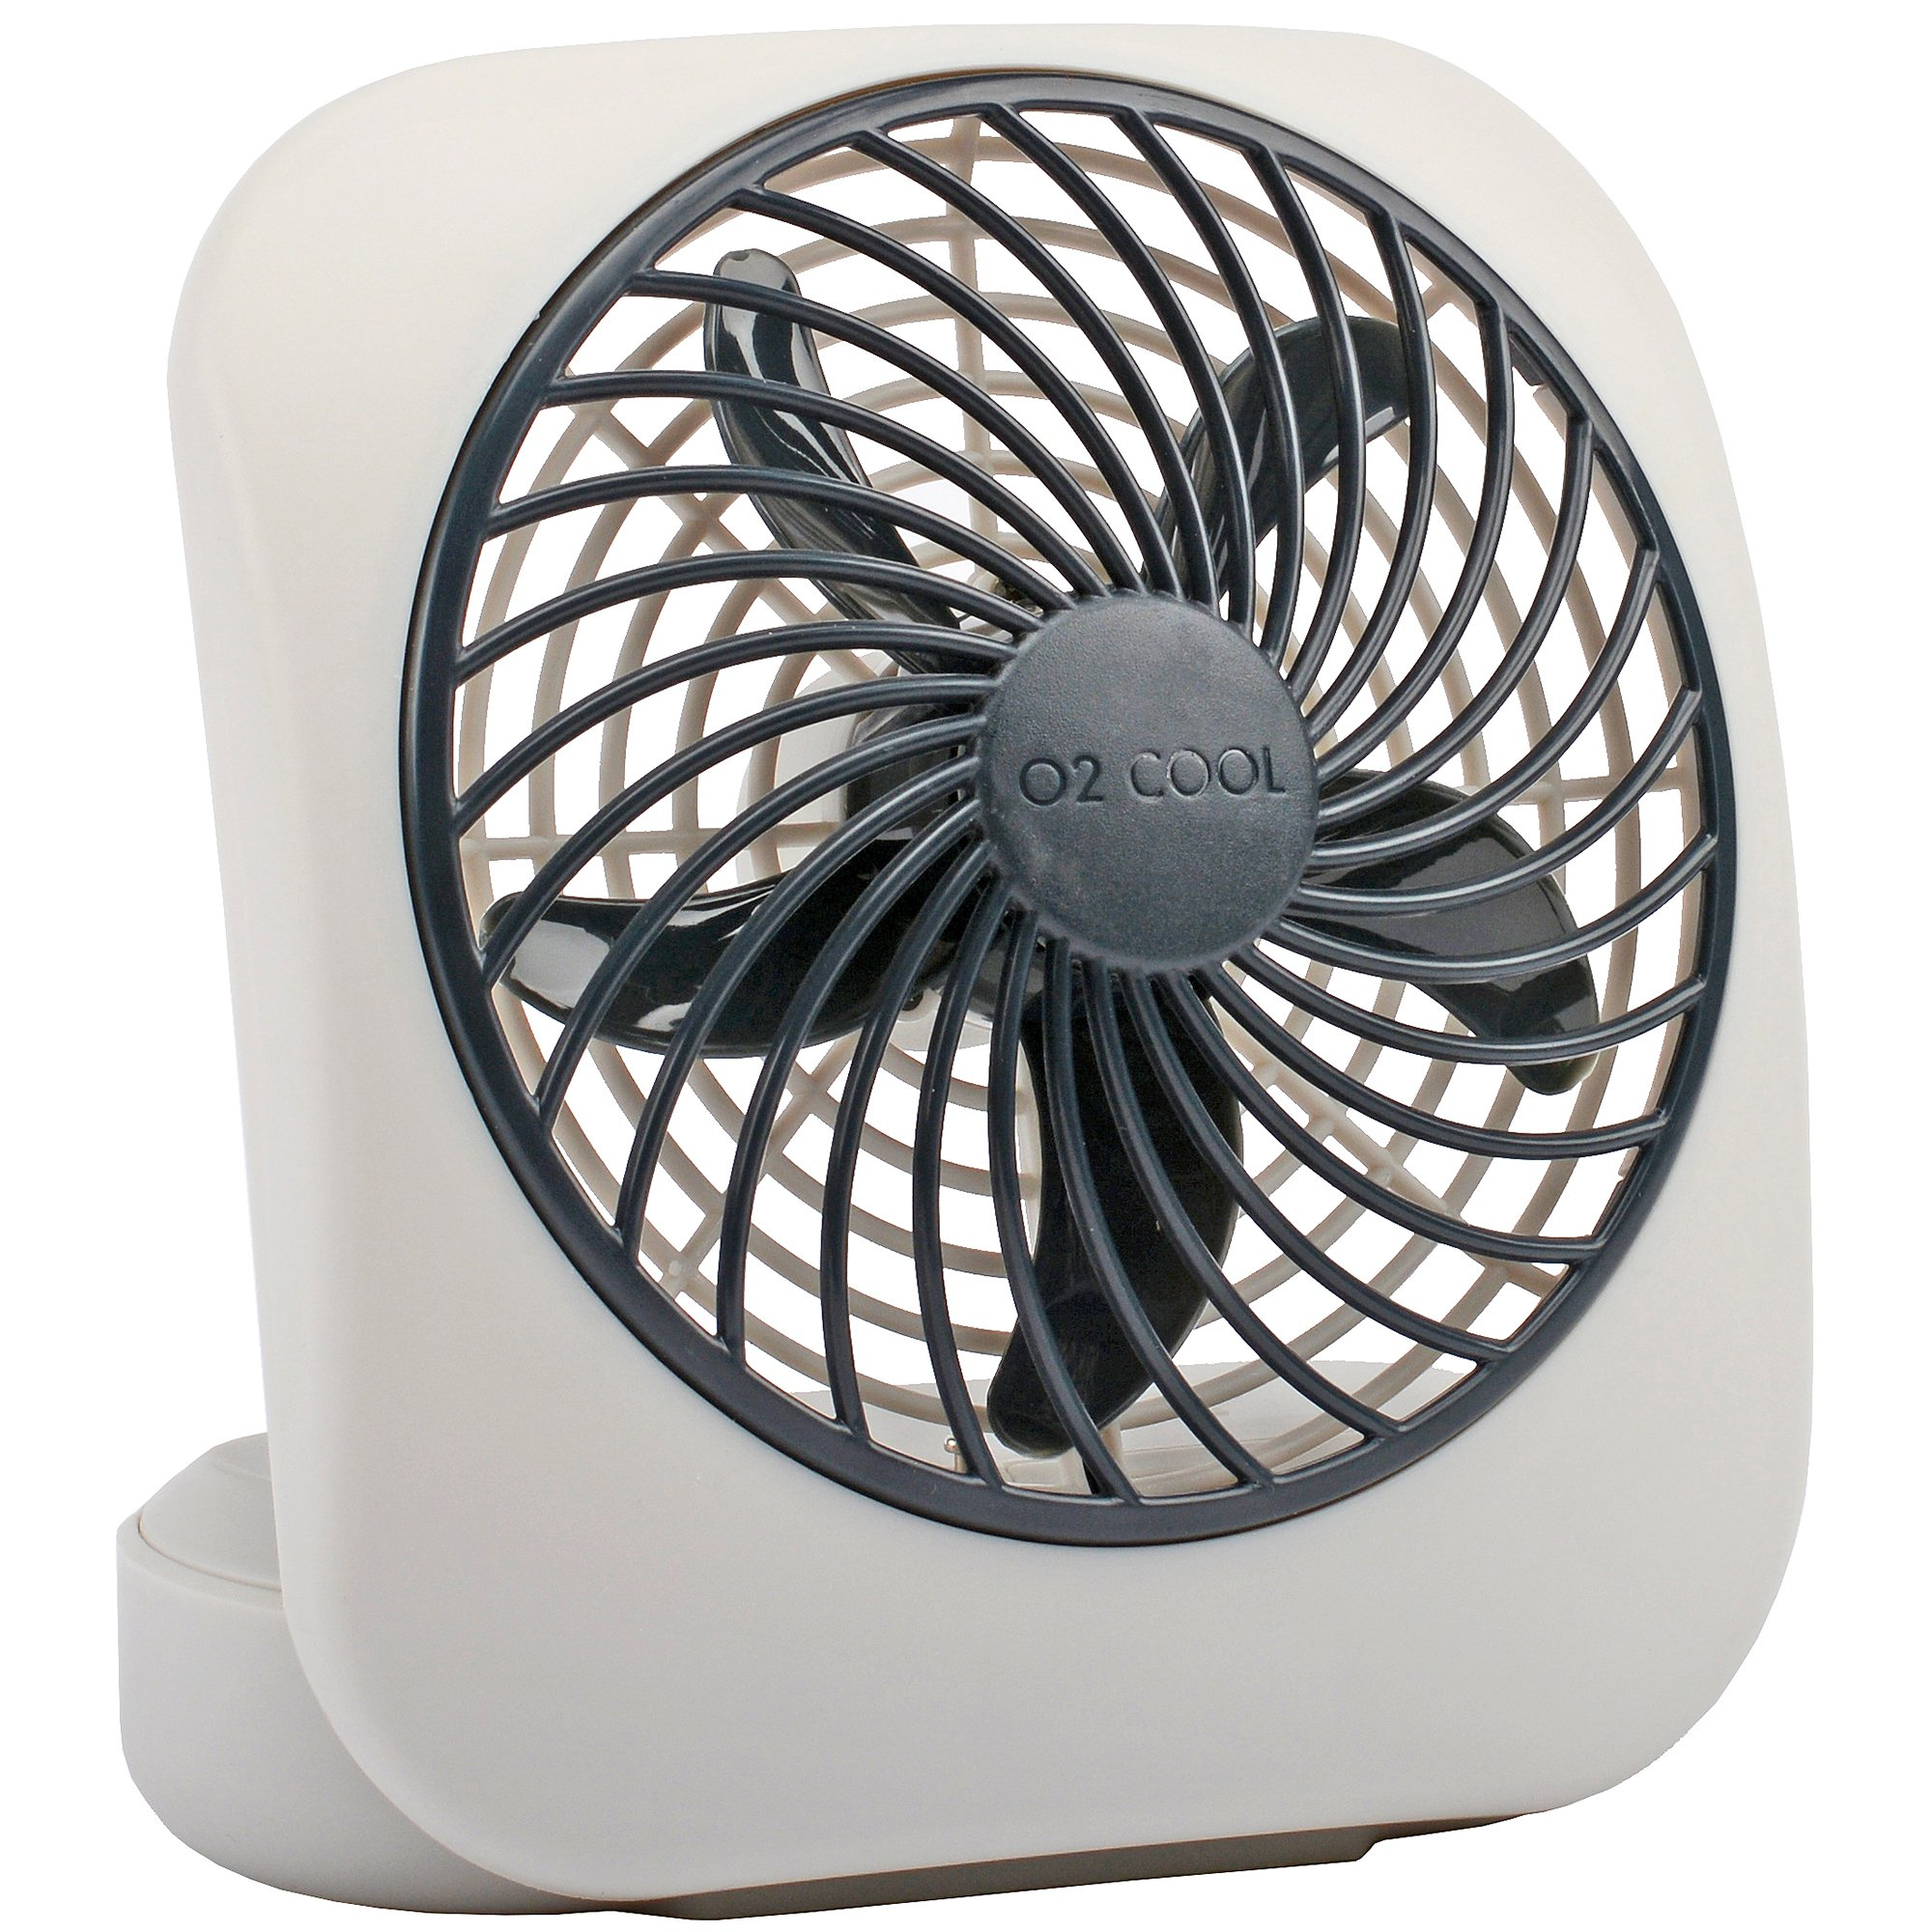 O2COOL 5-Inch Portable Fan, Desktop Fan, Battery Operated Fan, 2-Speed Fan, Tilt Fan, Compact Folding Fan, D-Battery Fan, Tabletop Fan, Household Fan, Gray